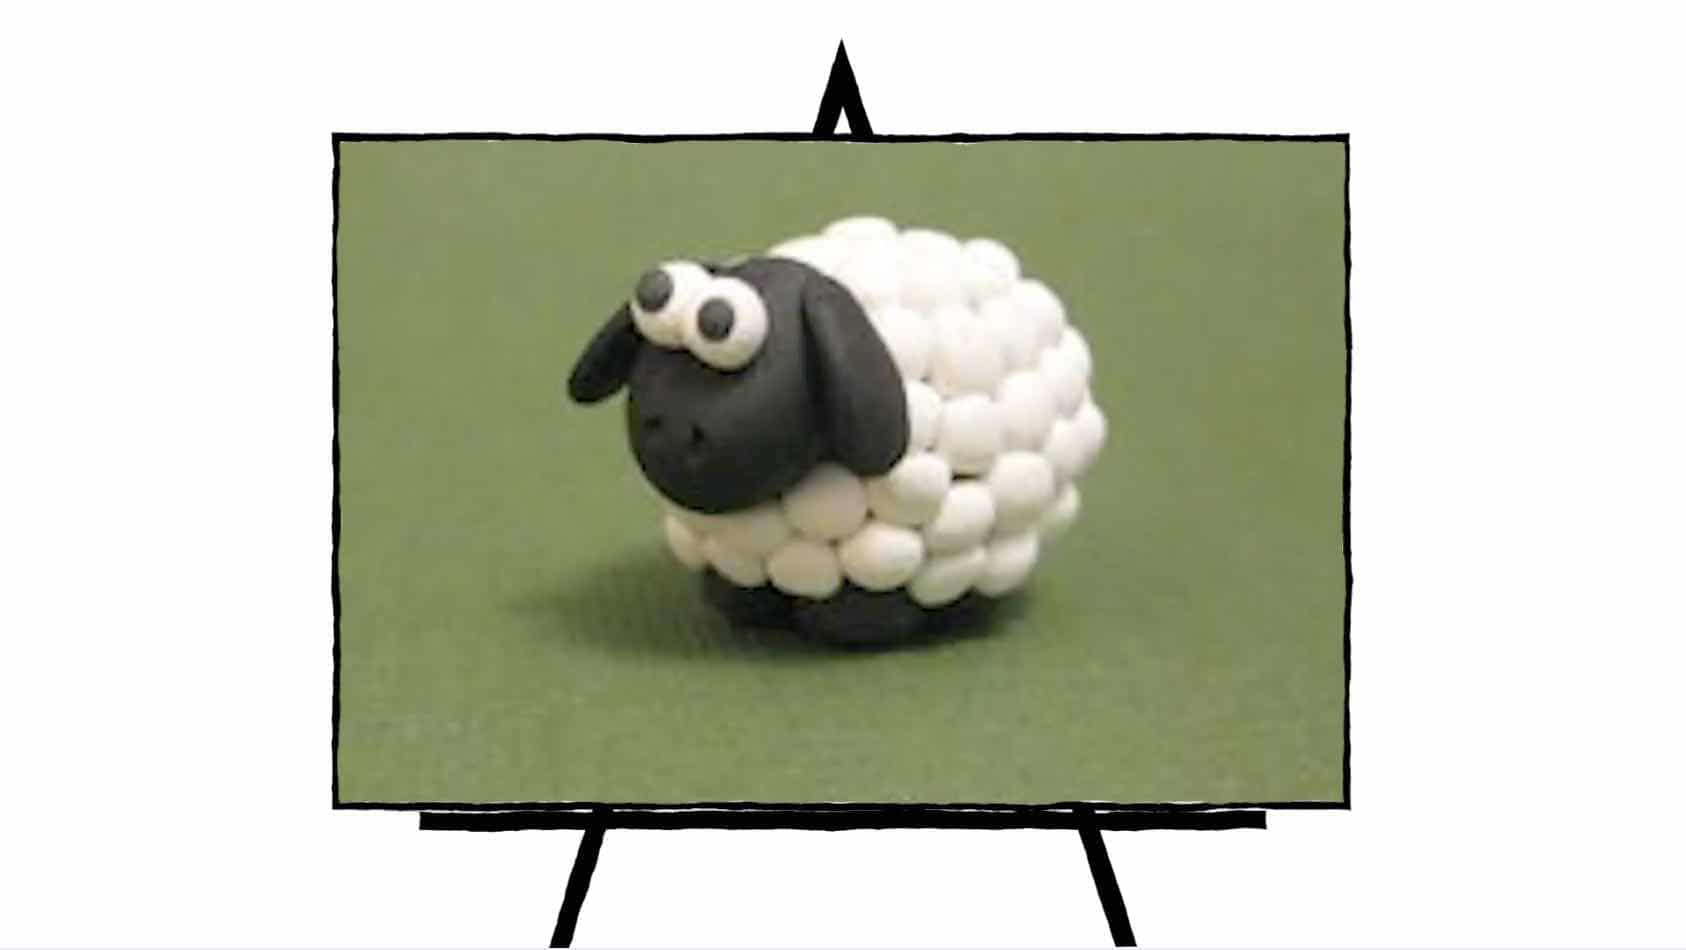 image of a 3d sheep in black and white clay sculpture